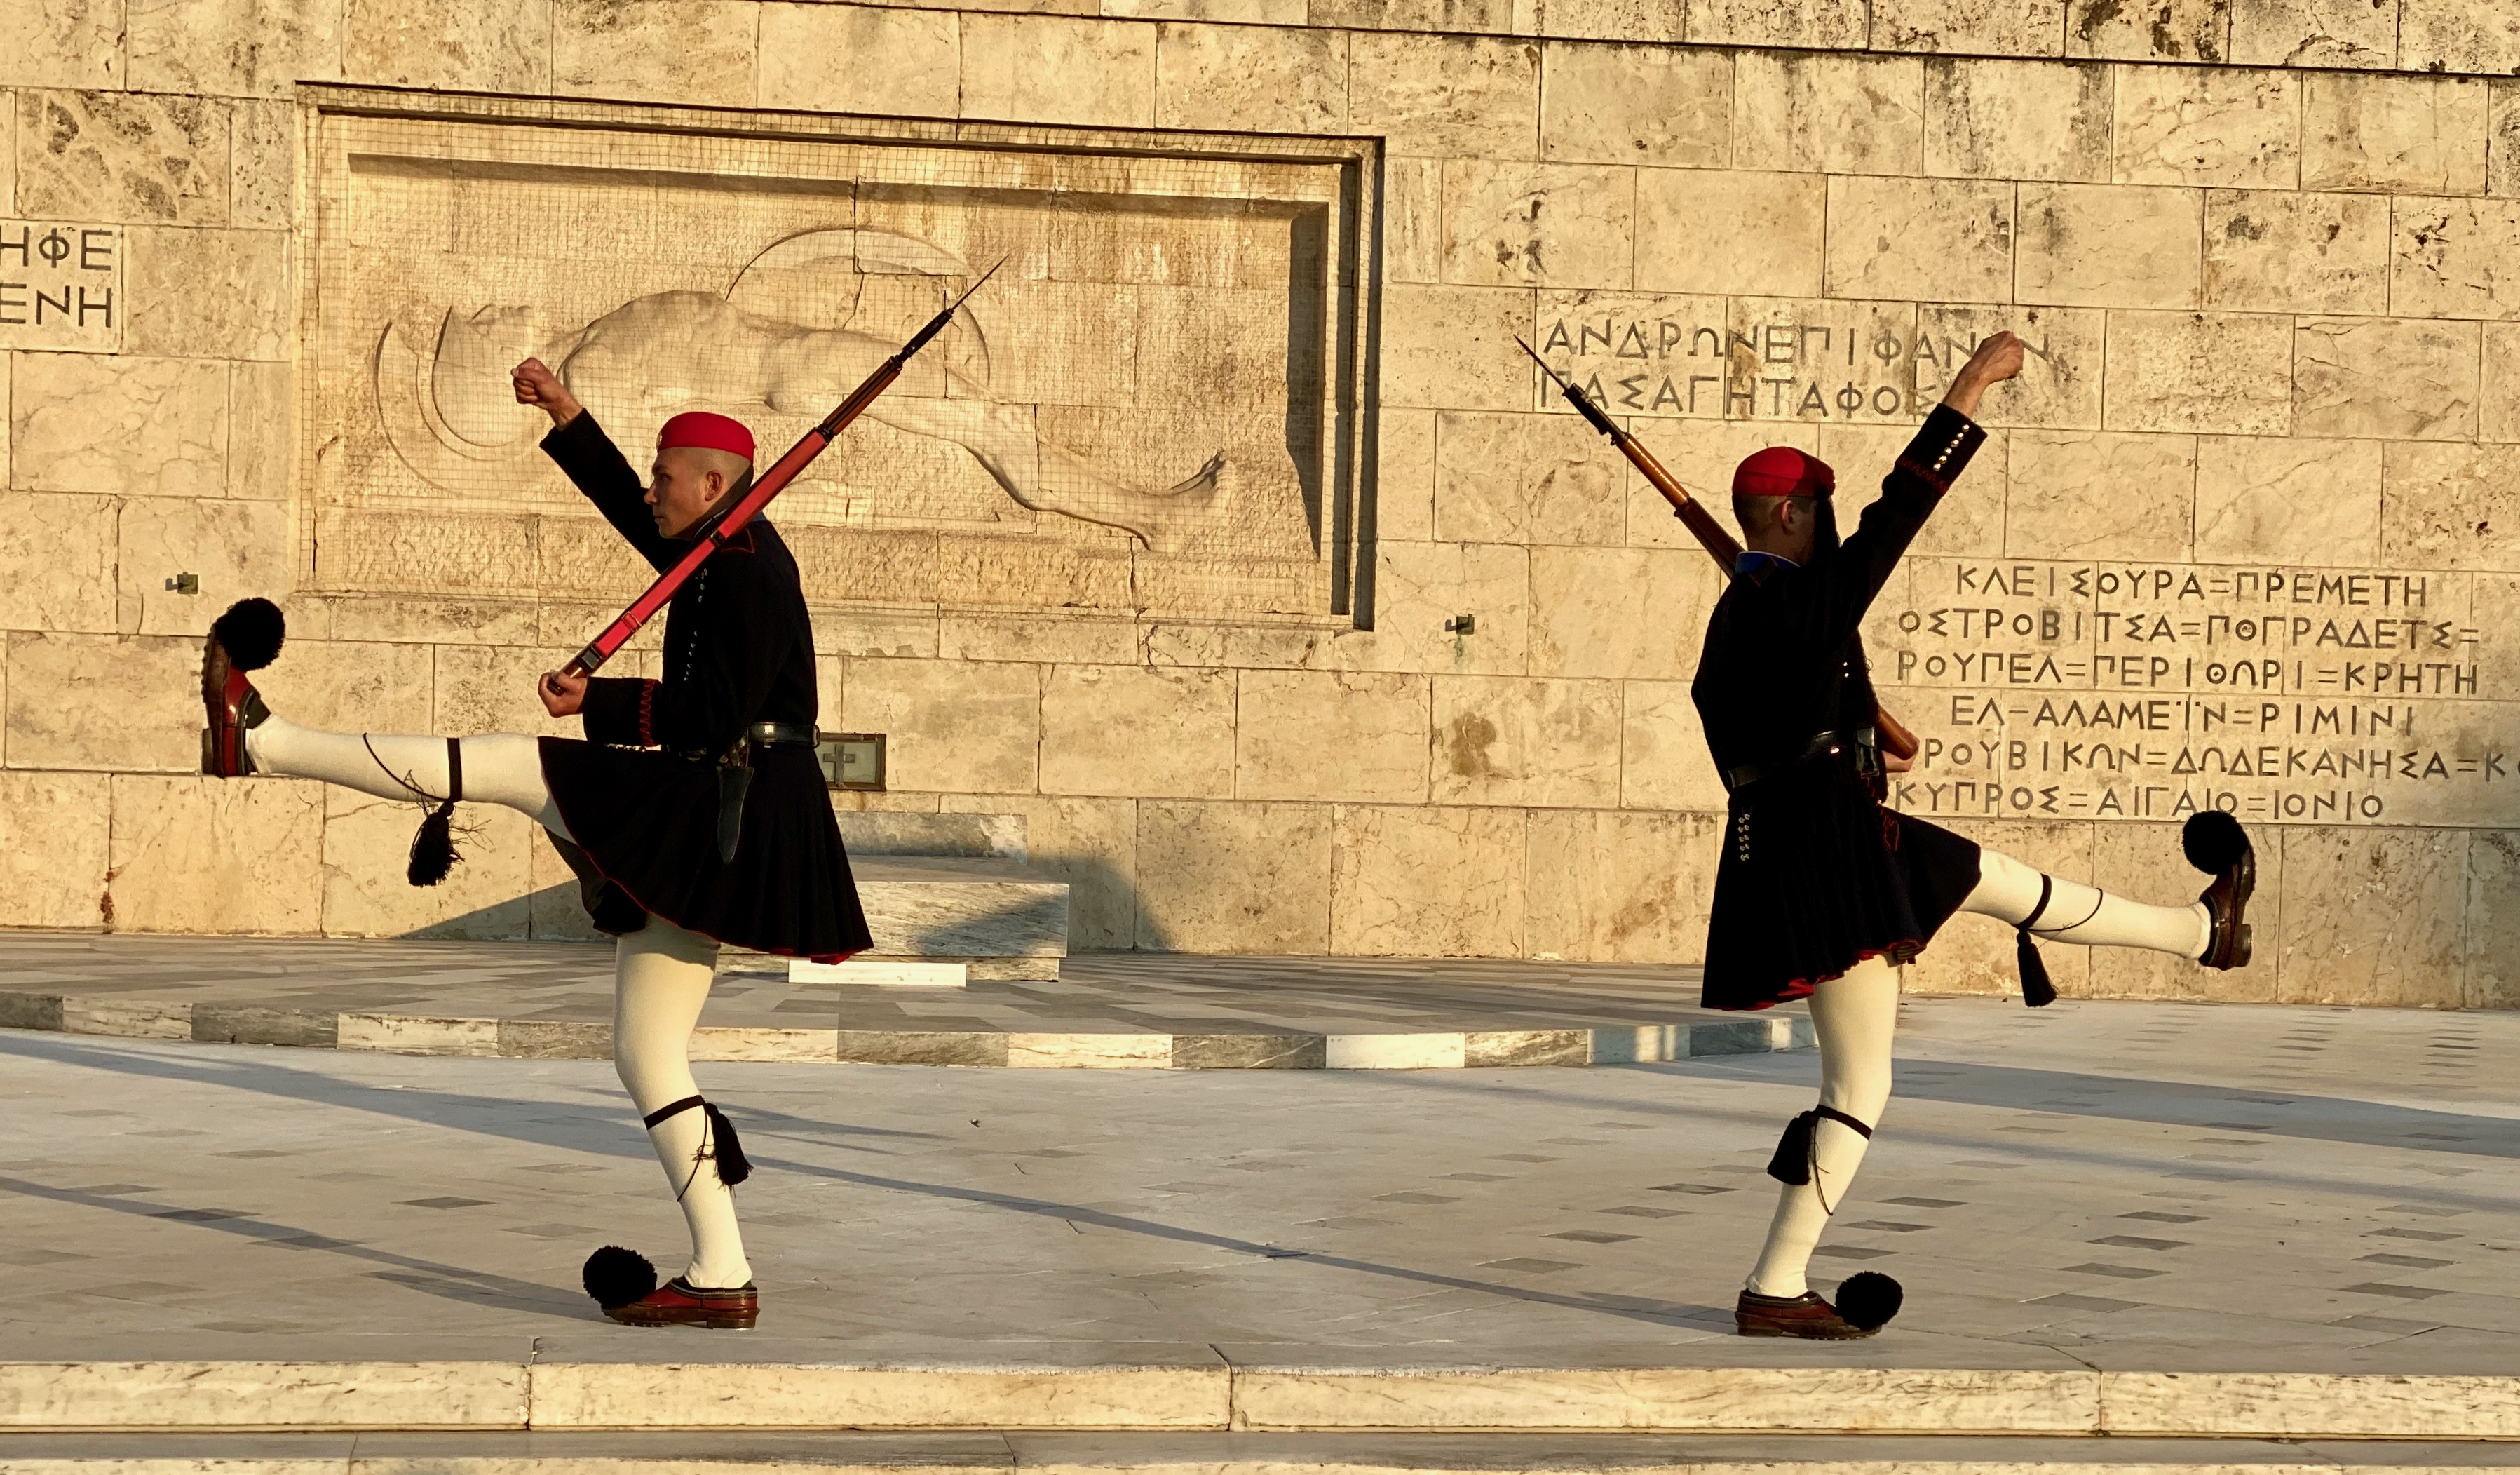 Honor Guard at the Tomb of the Unknown Soldier, Athens